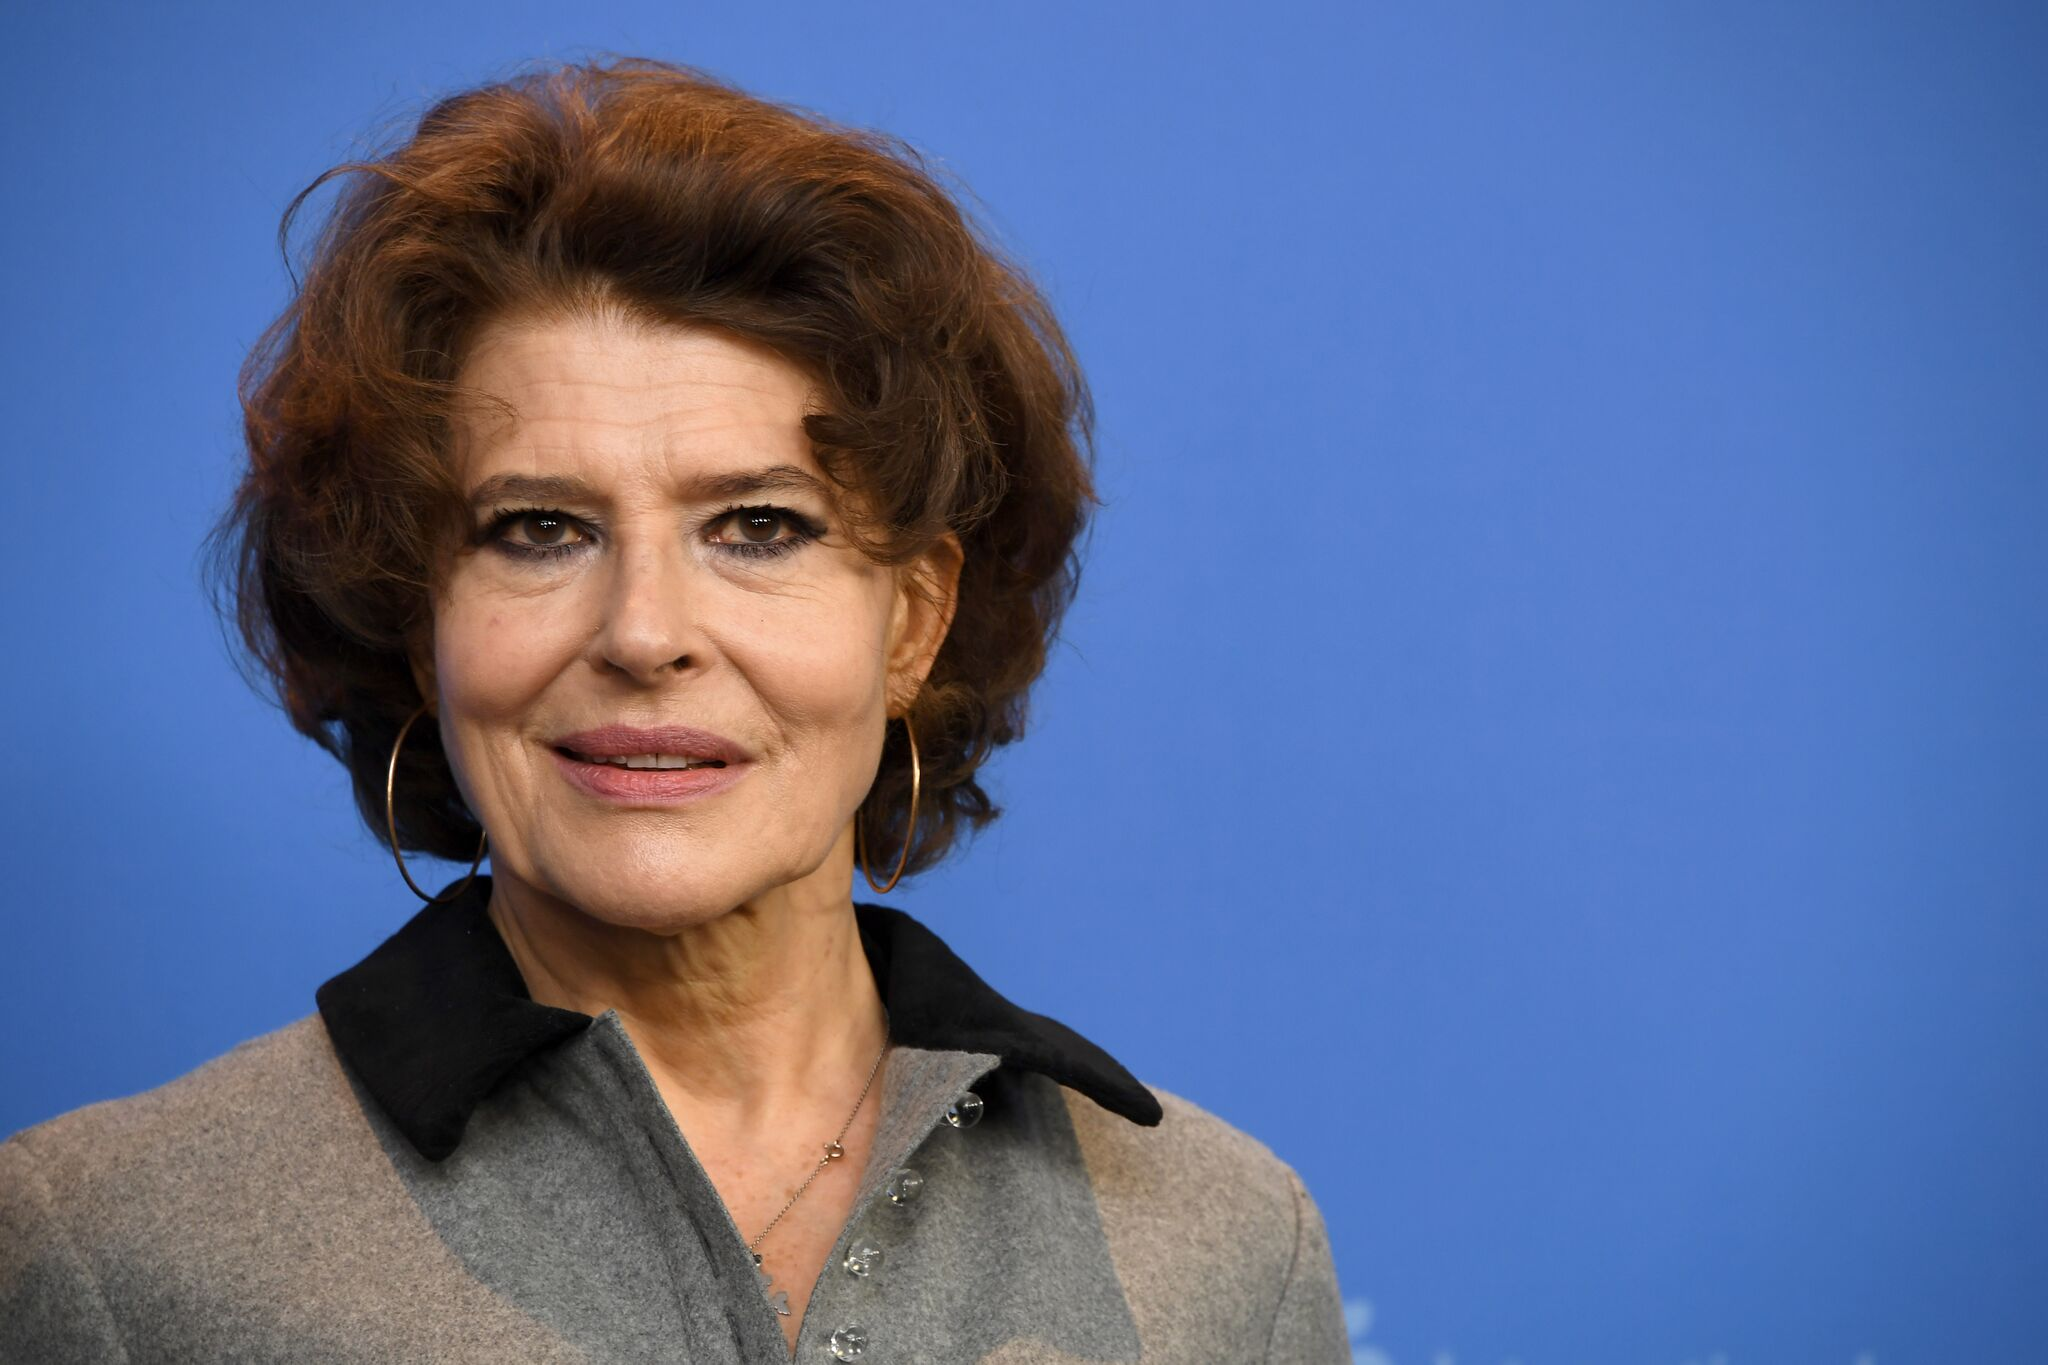 La comédienne Fanny Ardant. l Photo : Getty Images